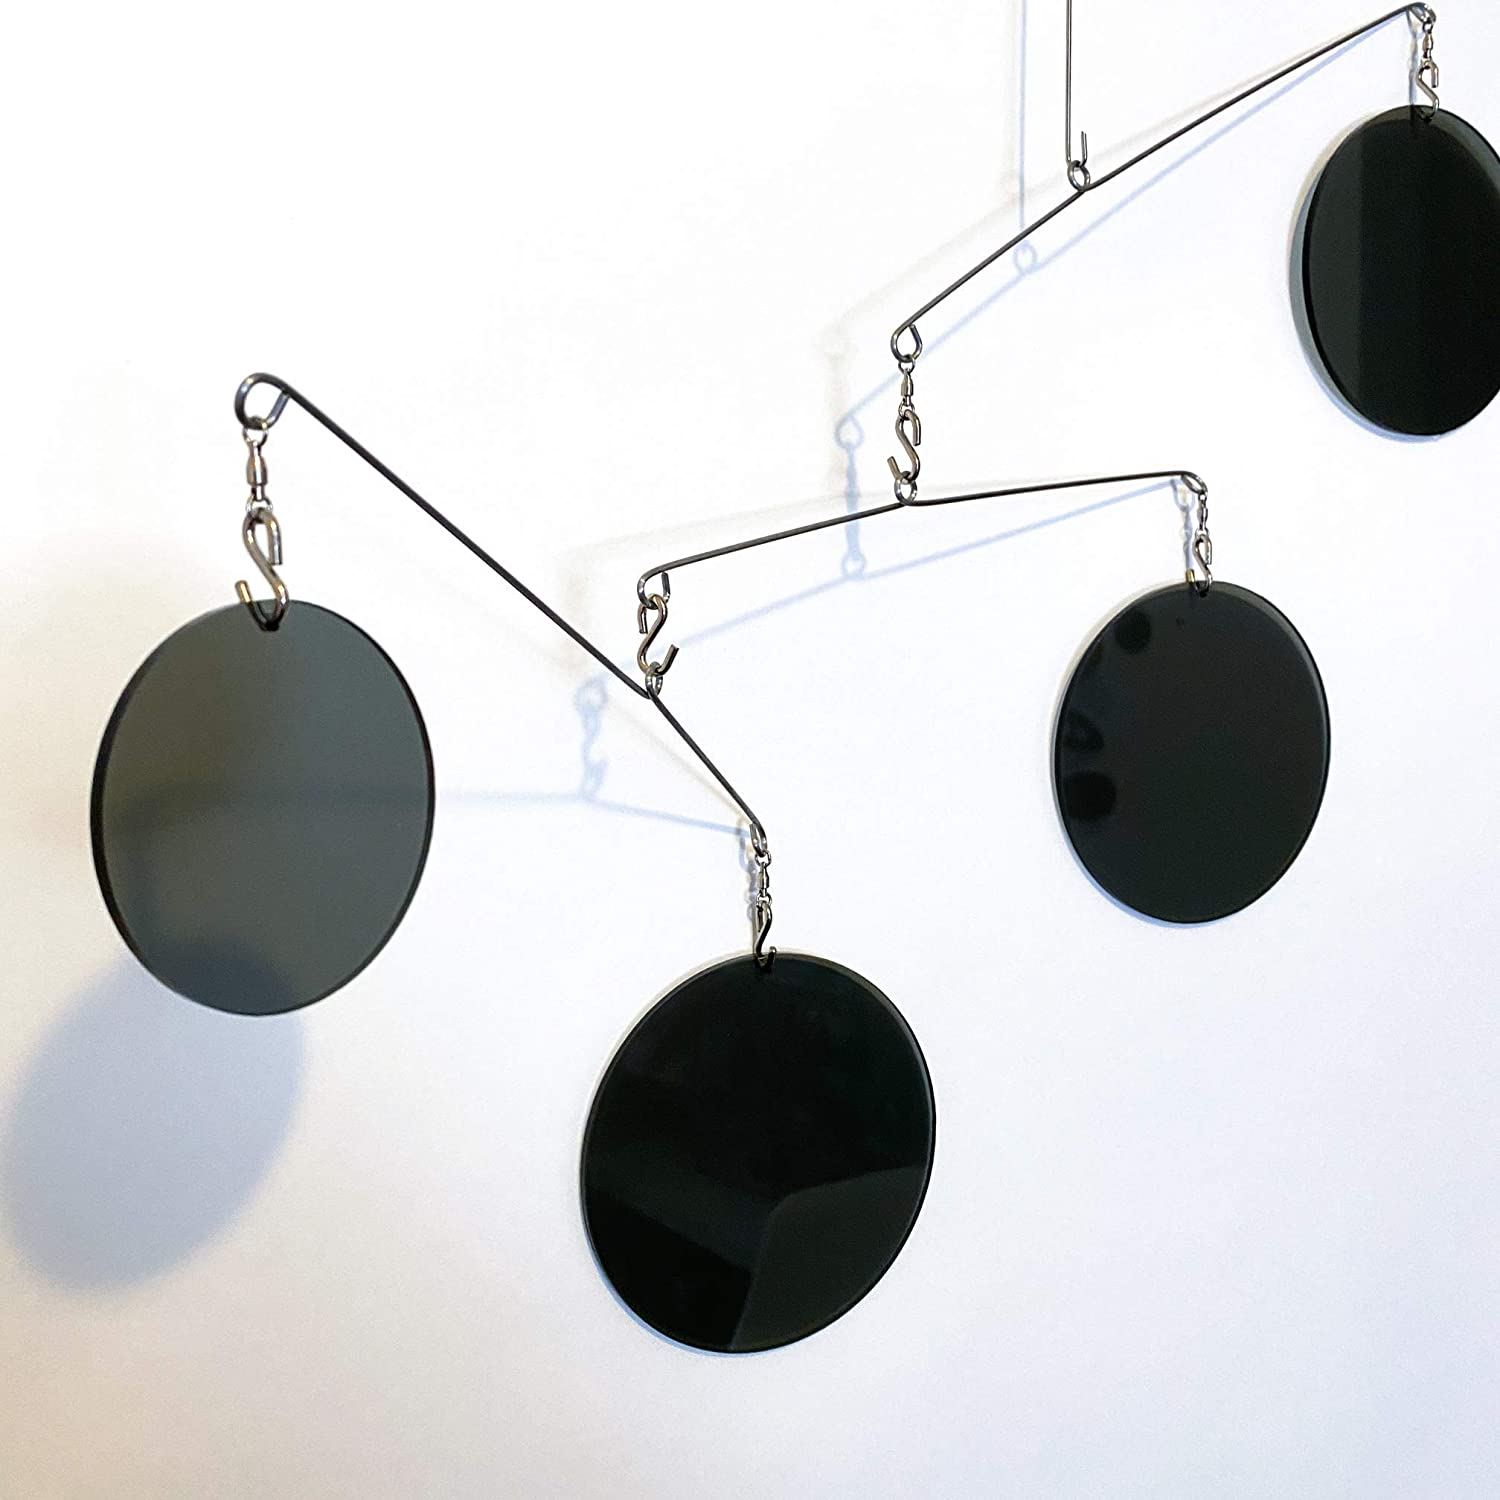 DIY Mobile Kit The Atomic Mobile Gorgeous Clear Smoky Gray MODular Kinetic Hanging Modern Art Inspired by Mid Century Modern Style